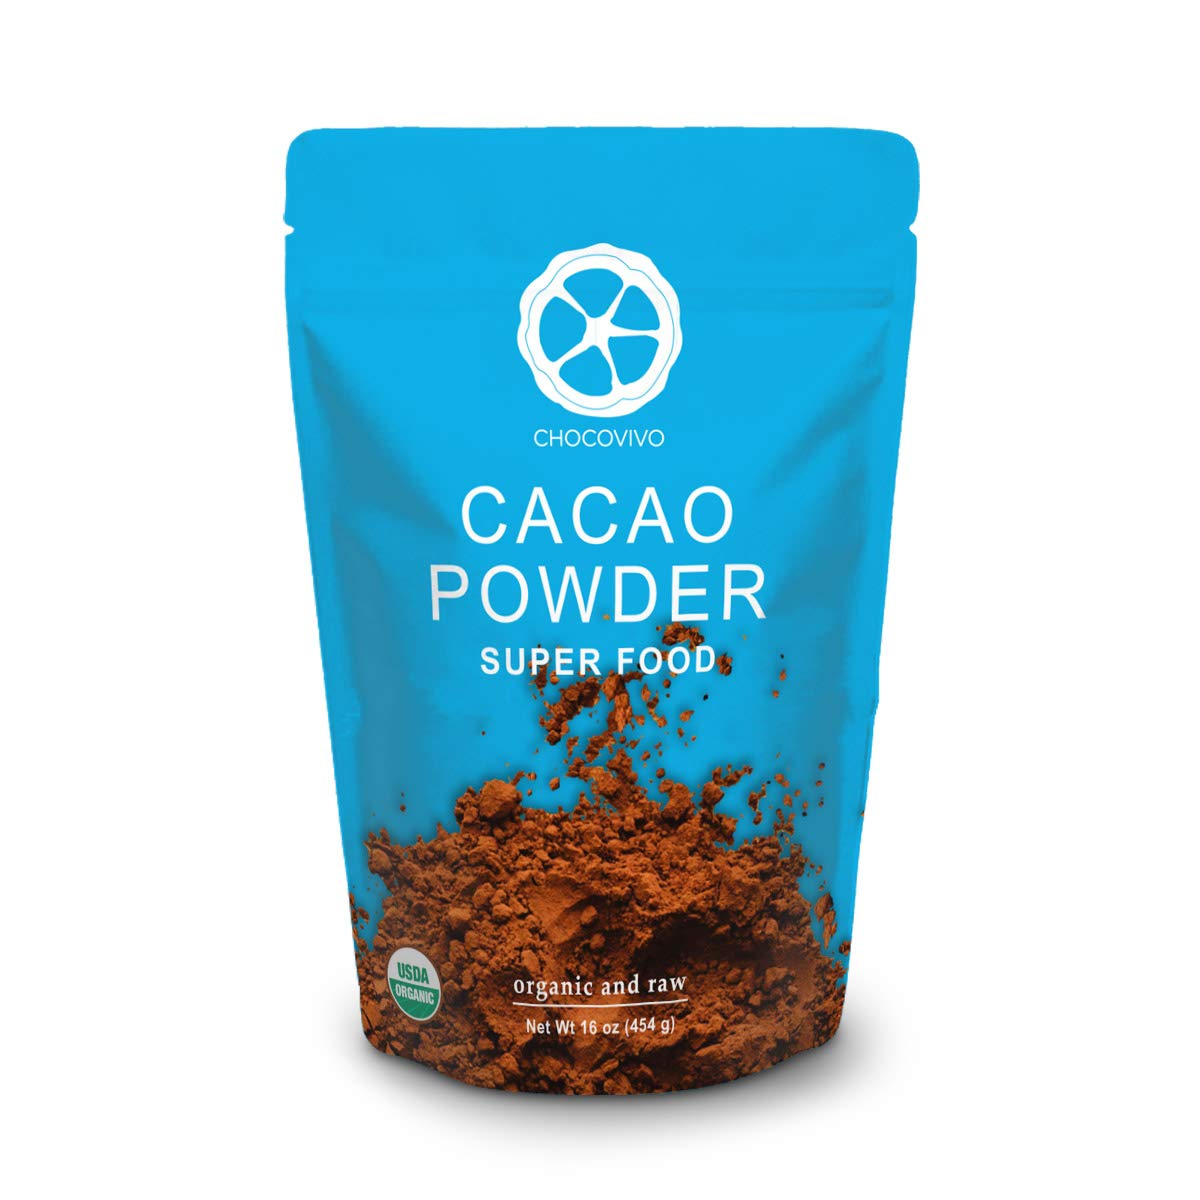 ChocoVivo Organic Raw Cacao Cocoa Powder Bulk - Superfood Packed with Natural Antioxidants Fiber and Flavanols for Healthy Immune System, 16 Ounces